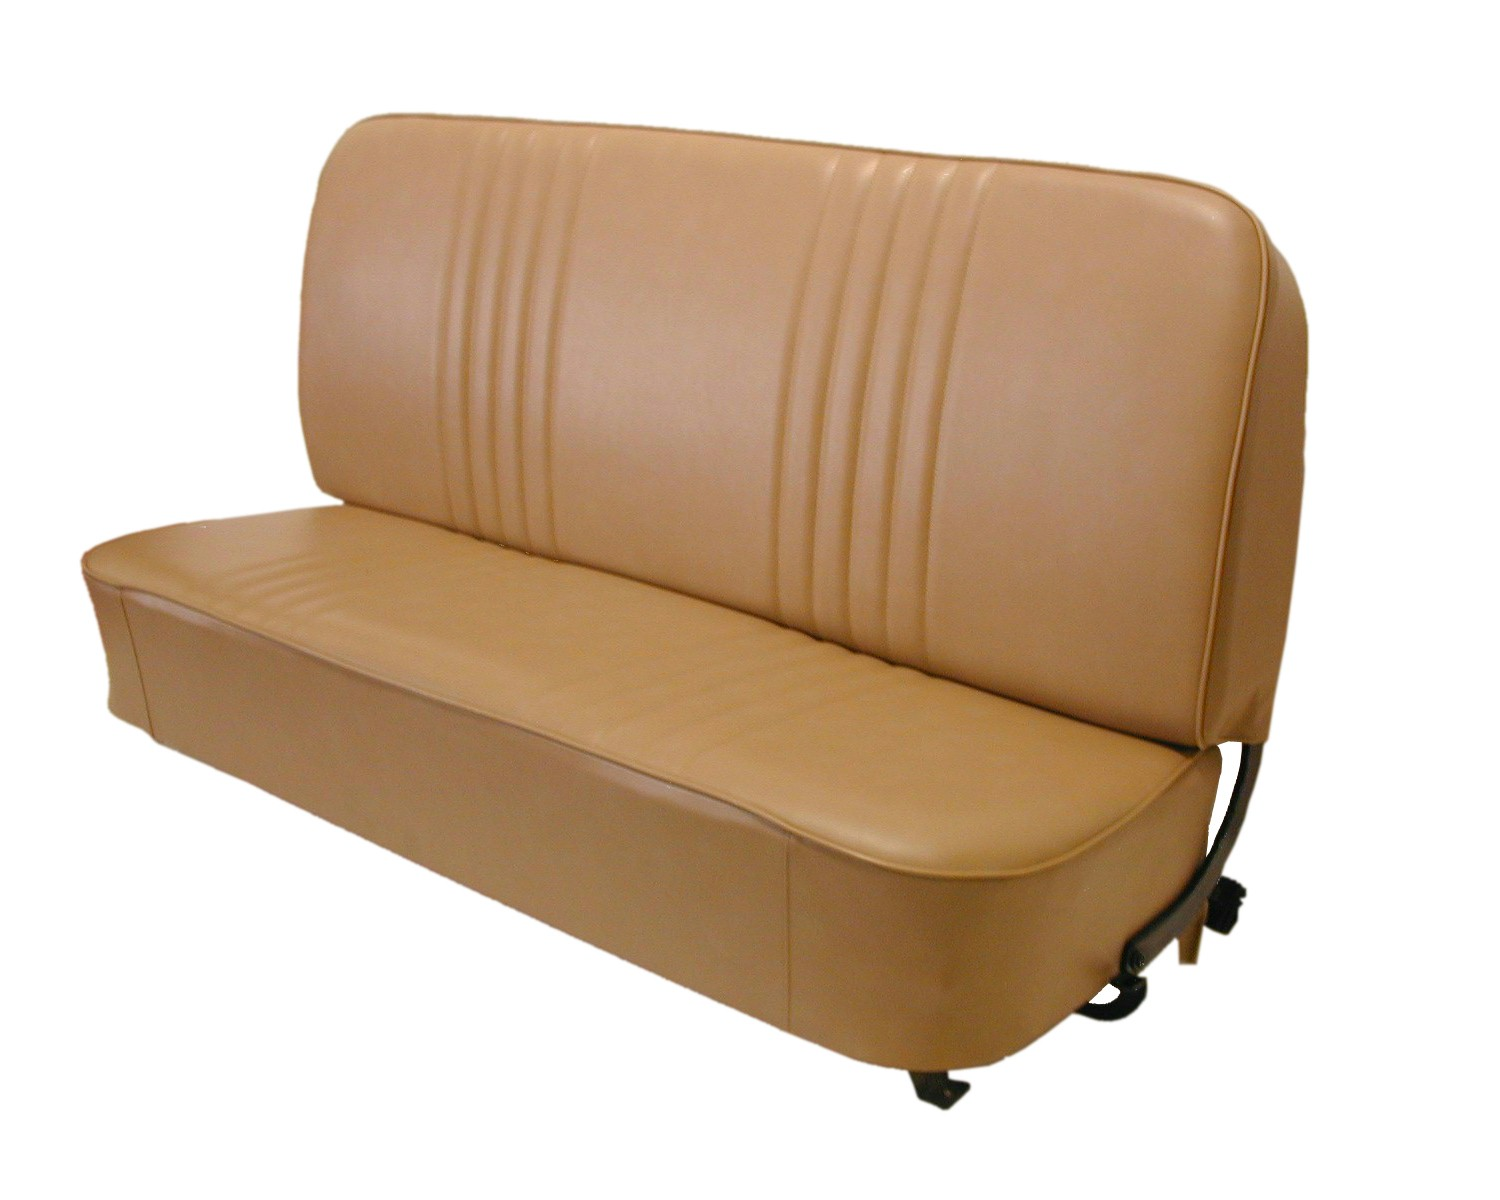 1955 1959 chevroletgmc standard cab pickup bench seat with pleats 1955 1959 chevroletgmc standard cab pickup bench seat with pleats seat upholstery kit u105p publicscrutiny Images